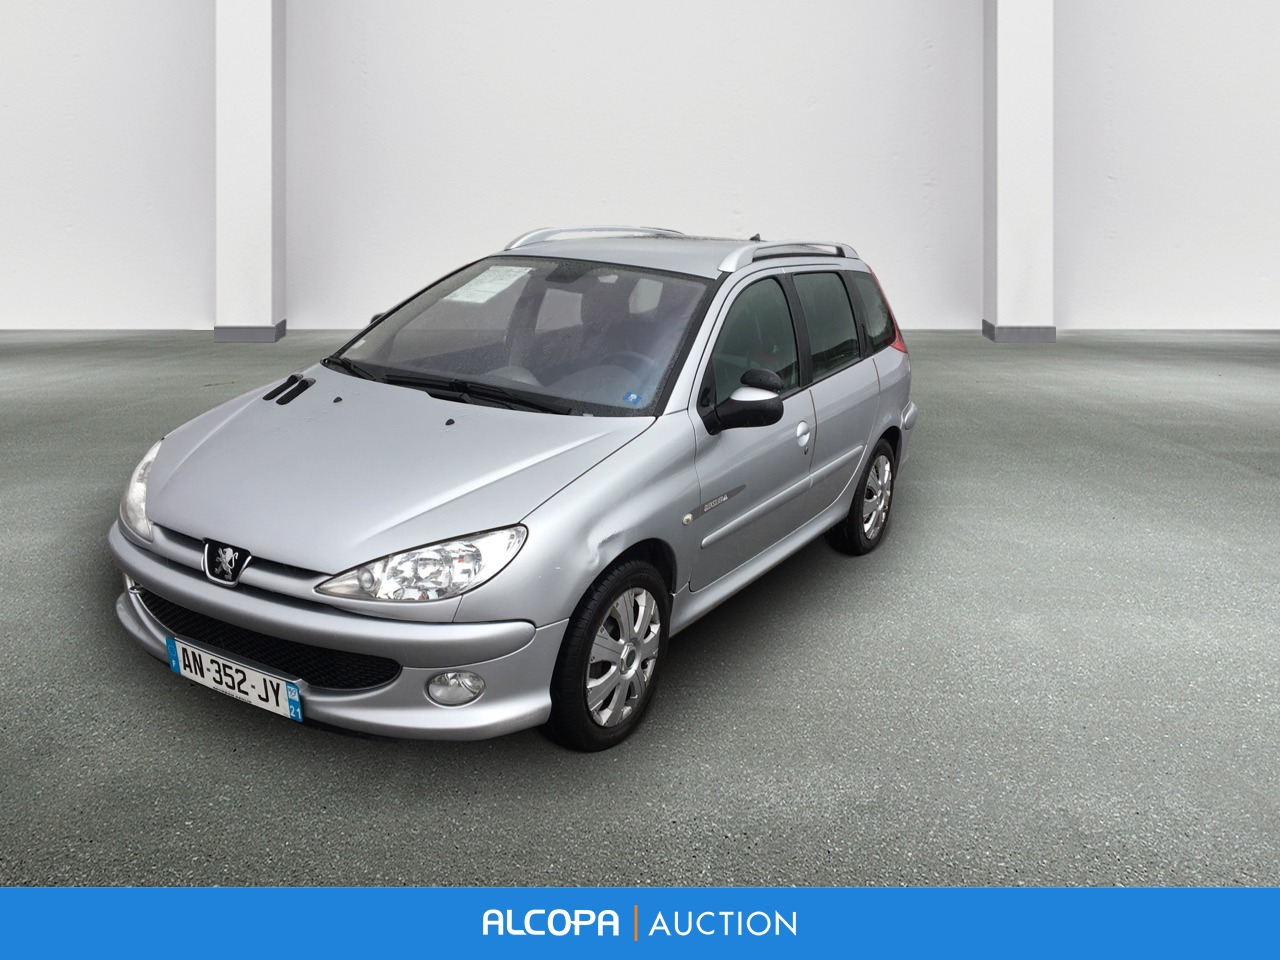 peugeot 206 sw 206 sw 1 6 hdi style alcopa auction. Black Bedroom Furniture Sets. Home Design Ideas